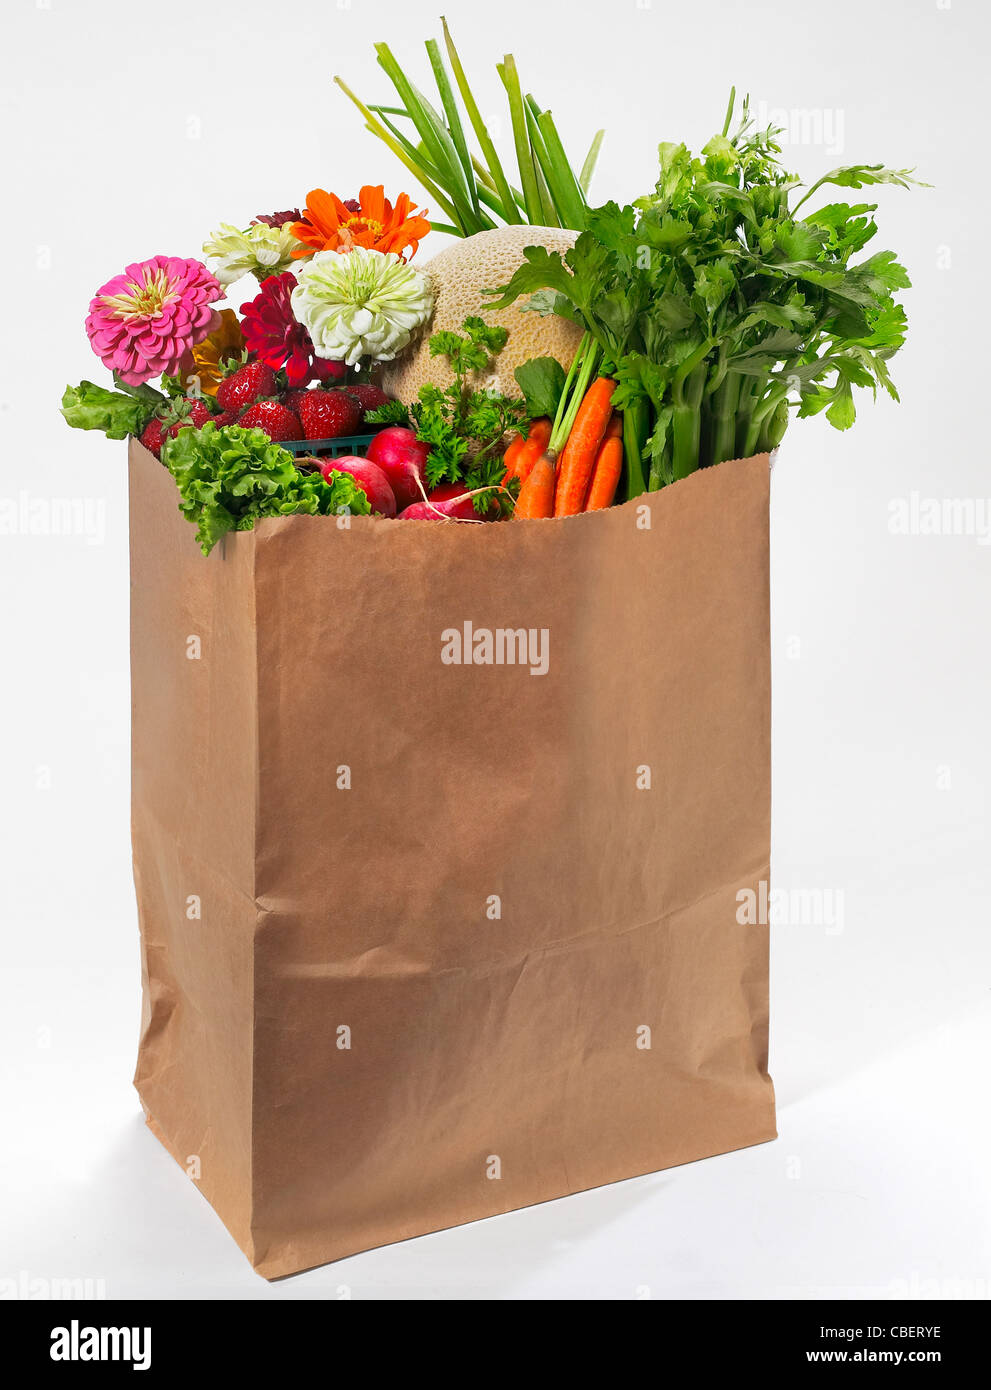 Brown Paper Grocery Bag With Fruits & Vegetables Stock Photo ...